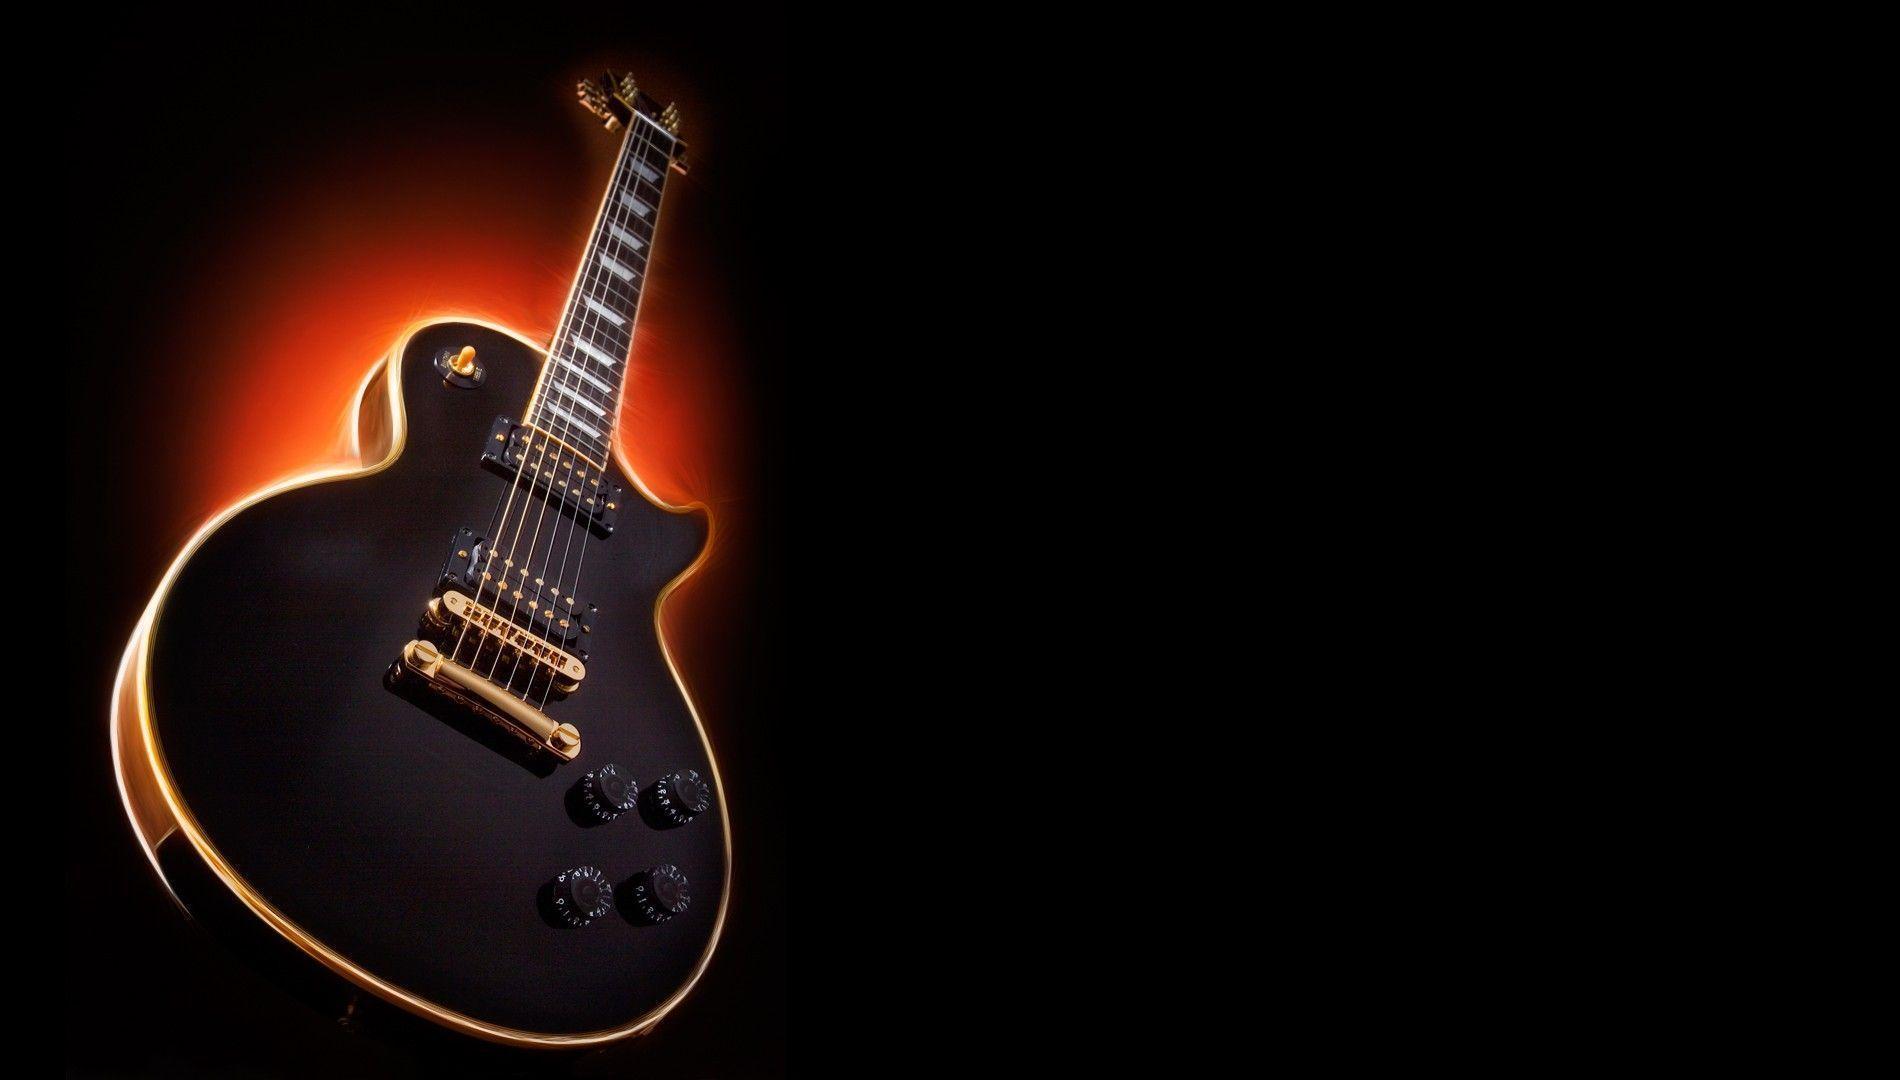 Gibson Les Paul Wallpapers Wallpaper Cave